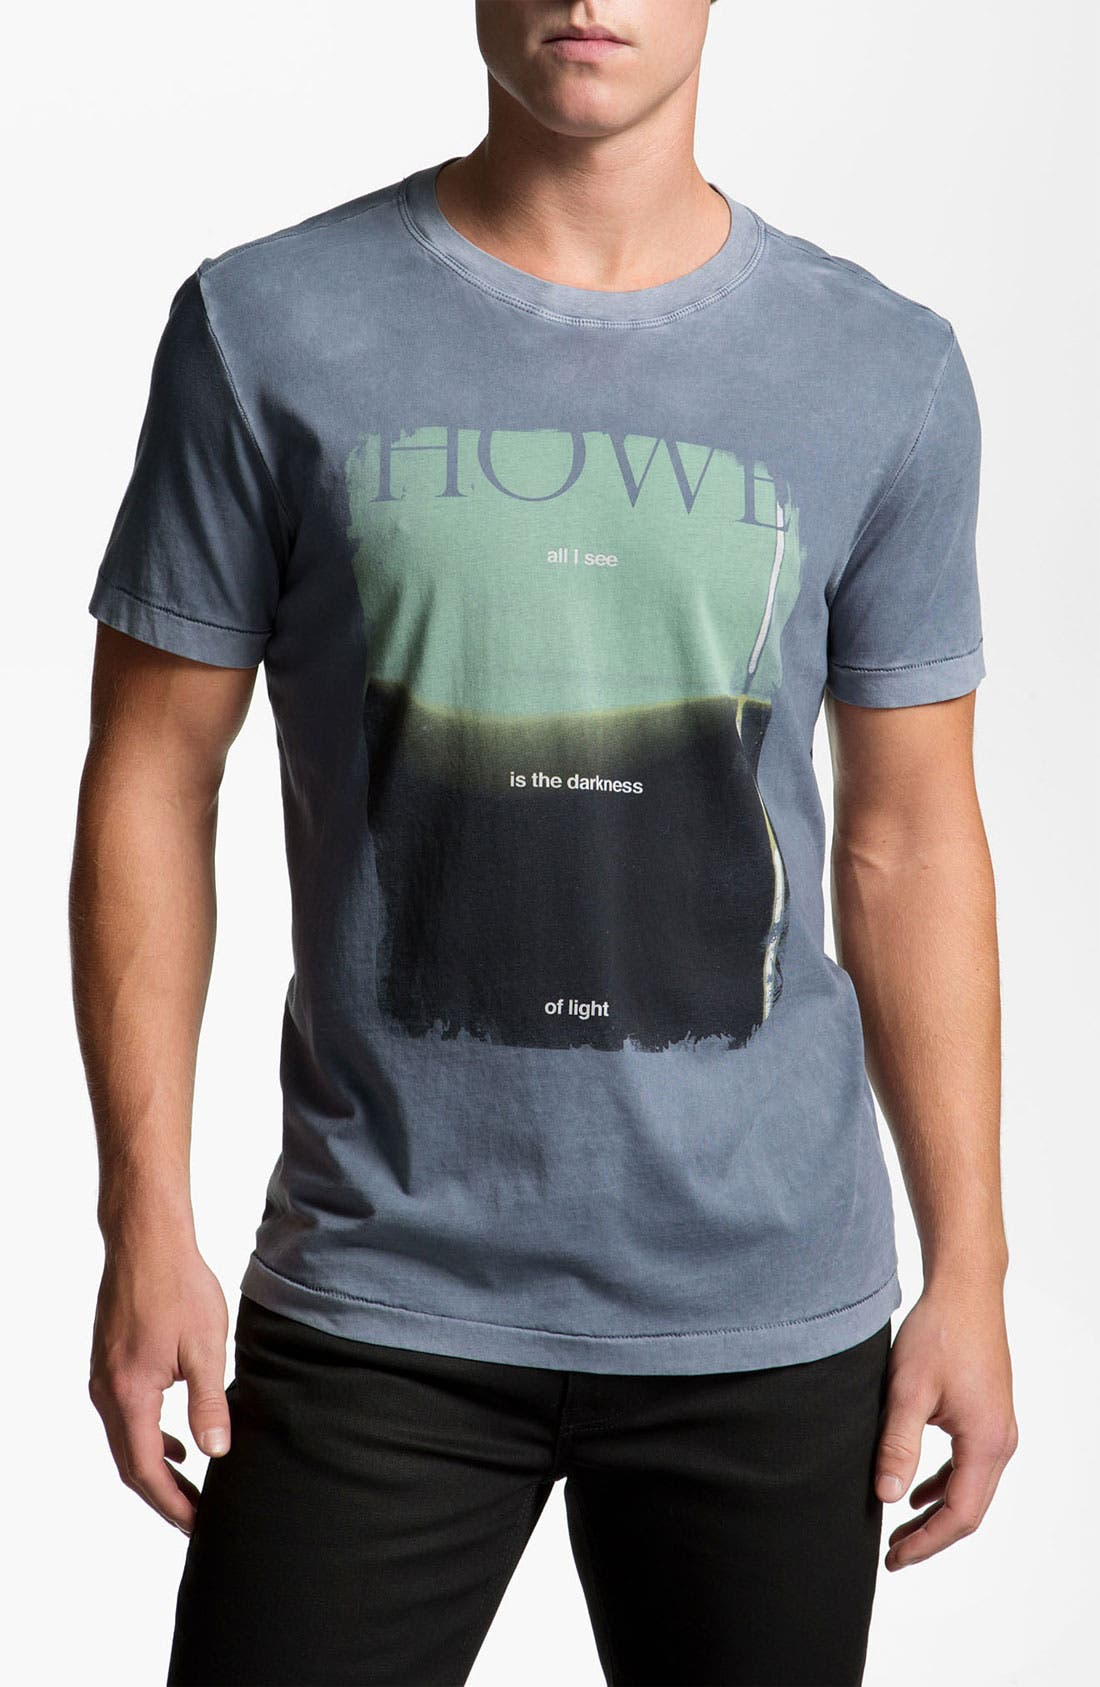 Alternate Image 1 Selected - Howe 'Darkness of Light' Graphic T-Shirt